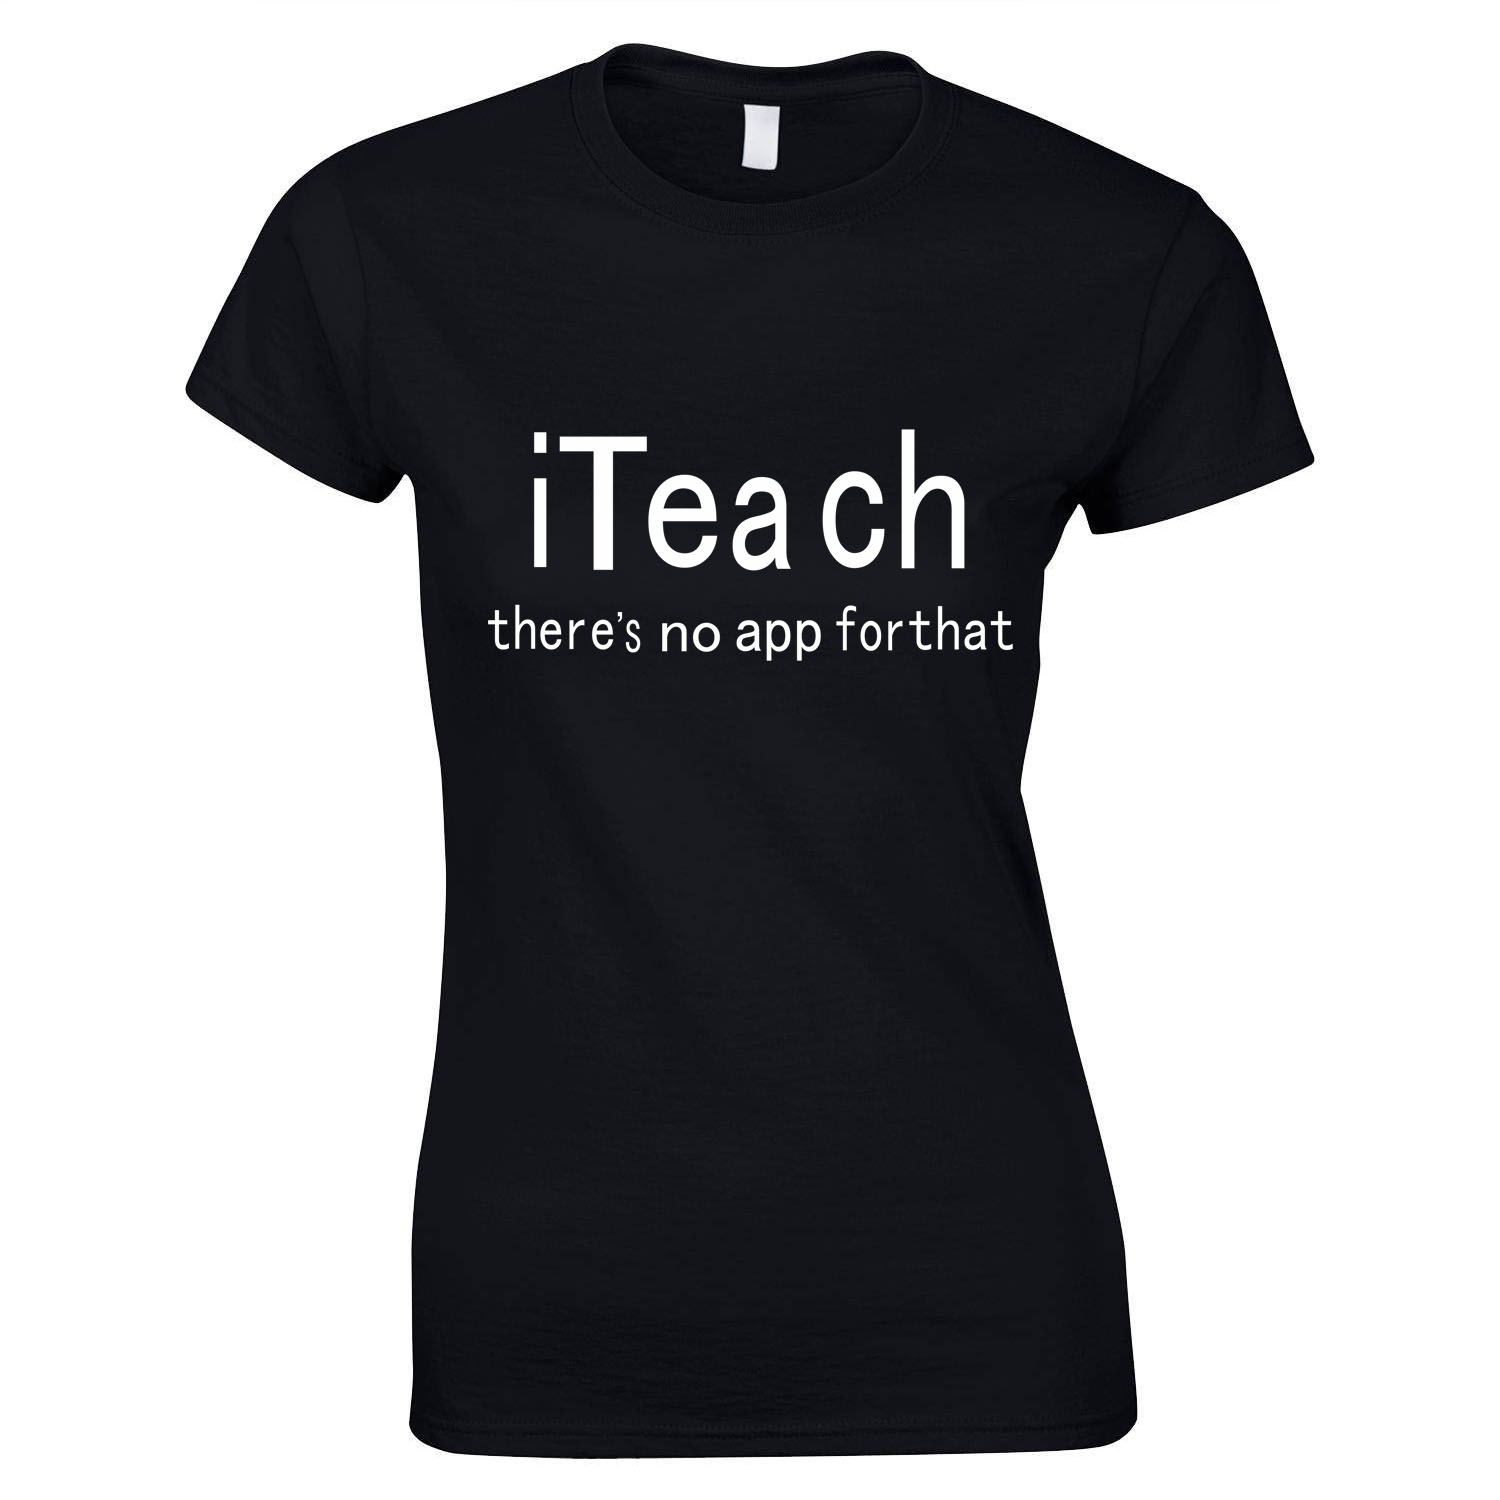 Men Teacher T-Shirt There's No App for That Text Printed UNISEX Tee Shirt Femme Back To School T Shirt image